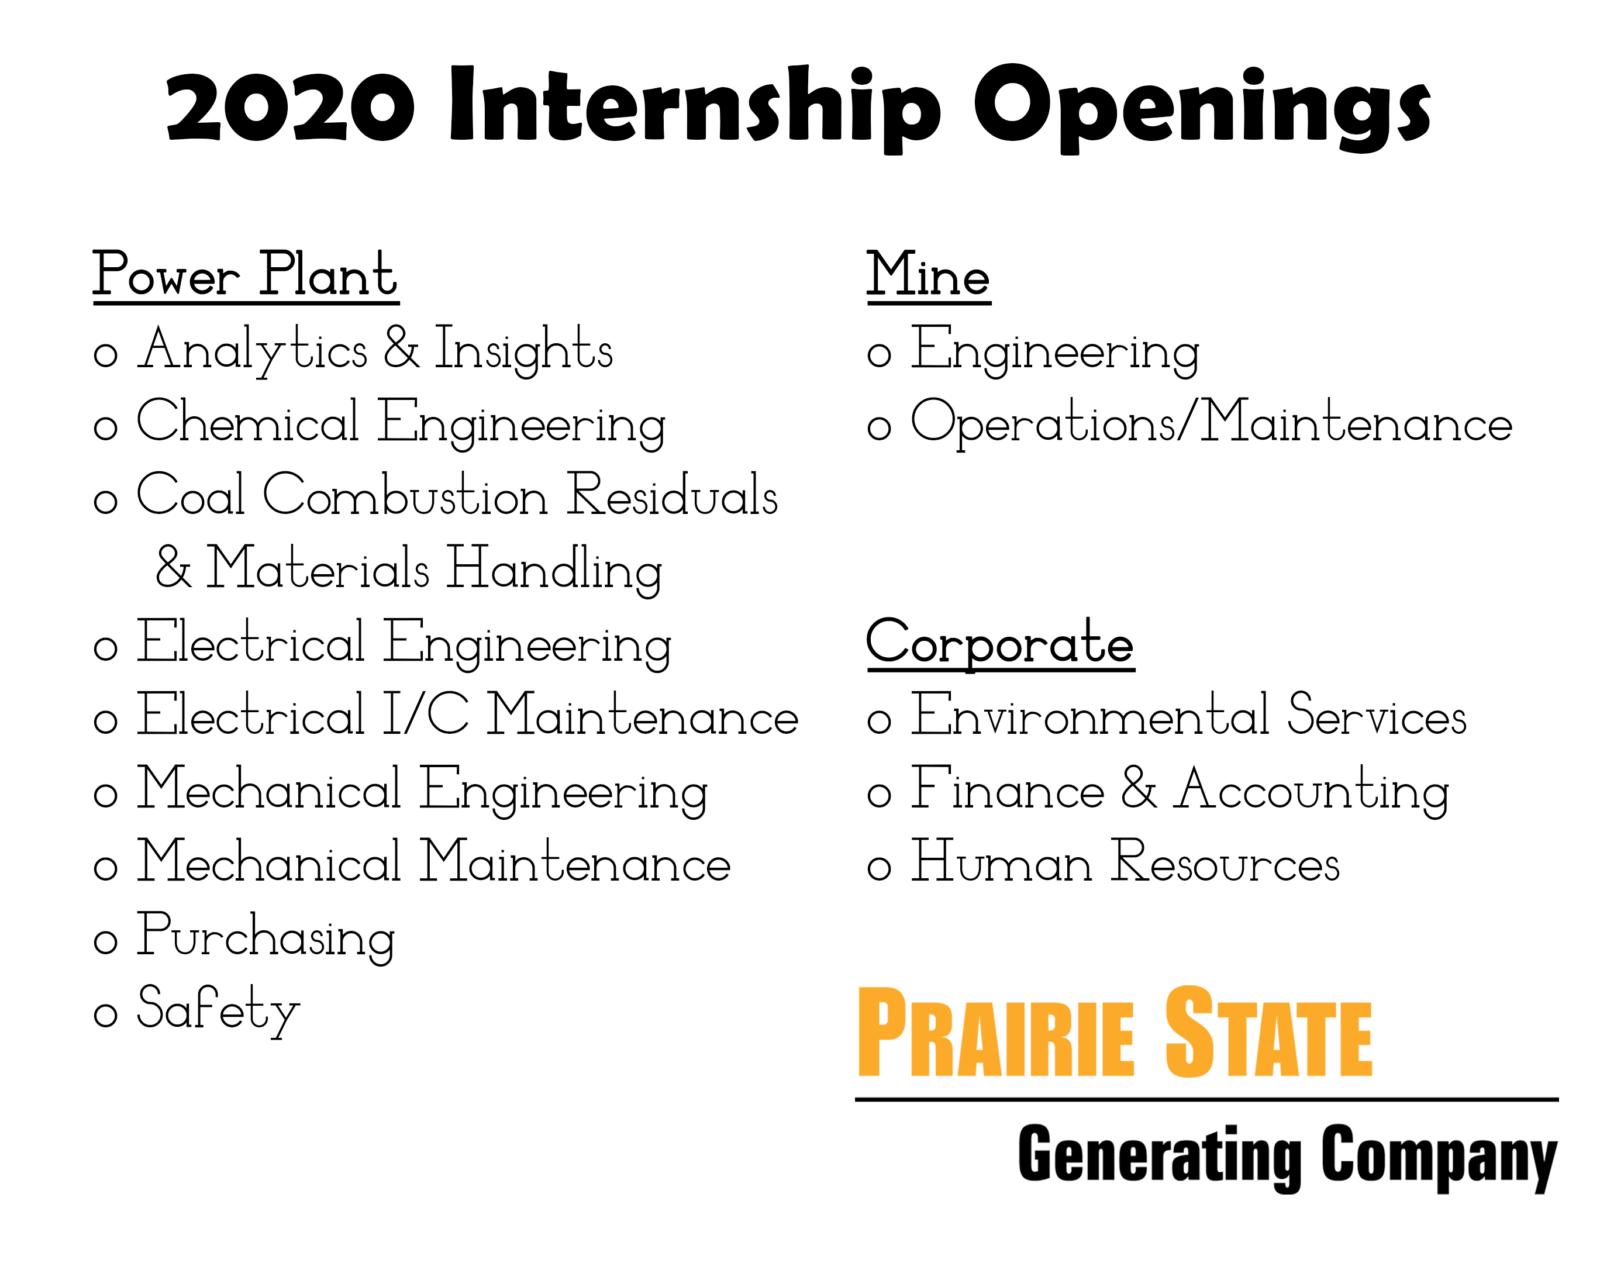 Electrical Engineering Internships Summer 2020.2020 Summer Internship Program Prairie State Energy Campus